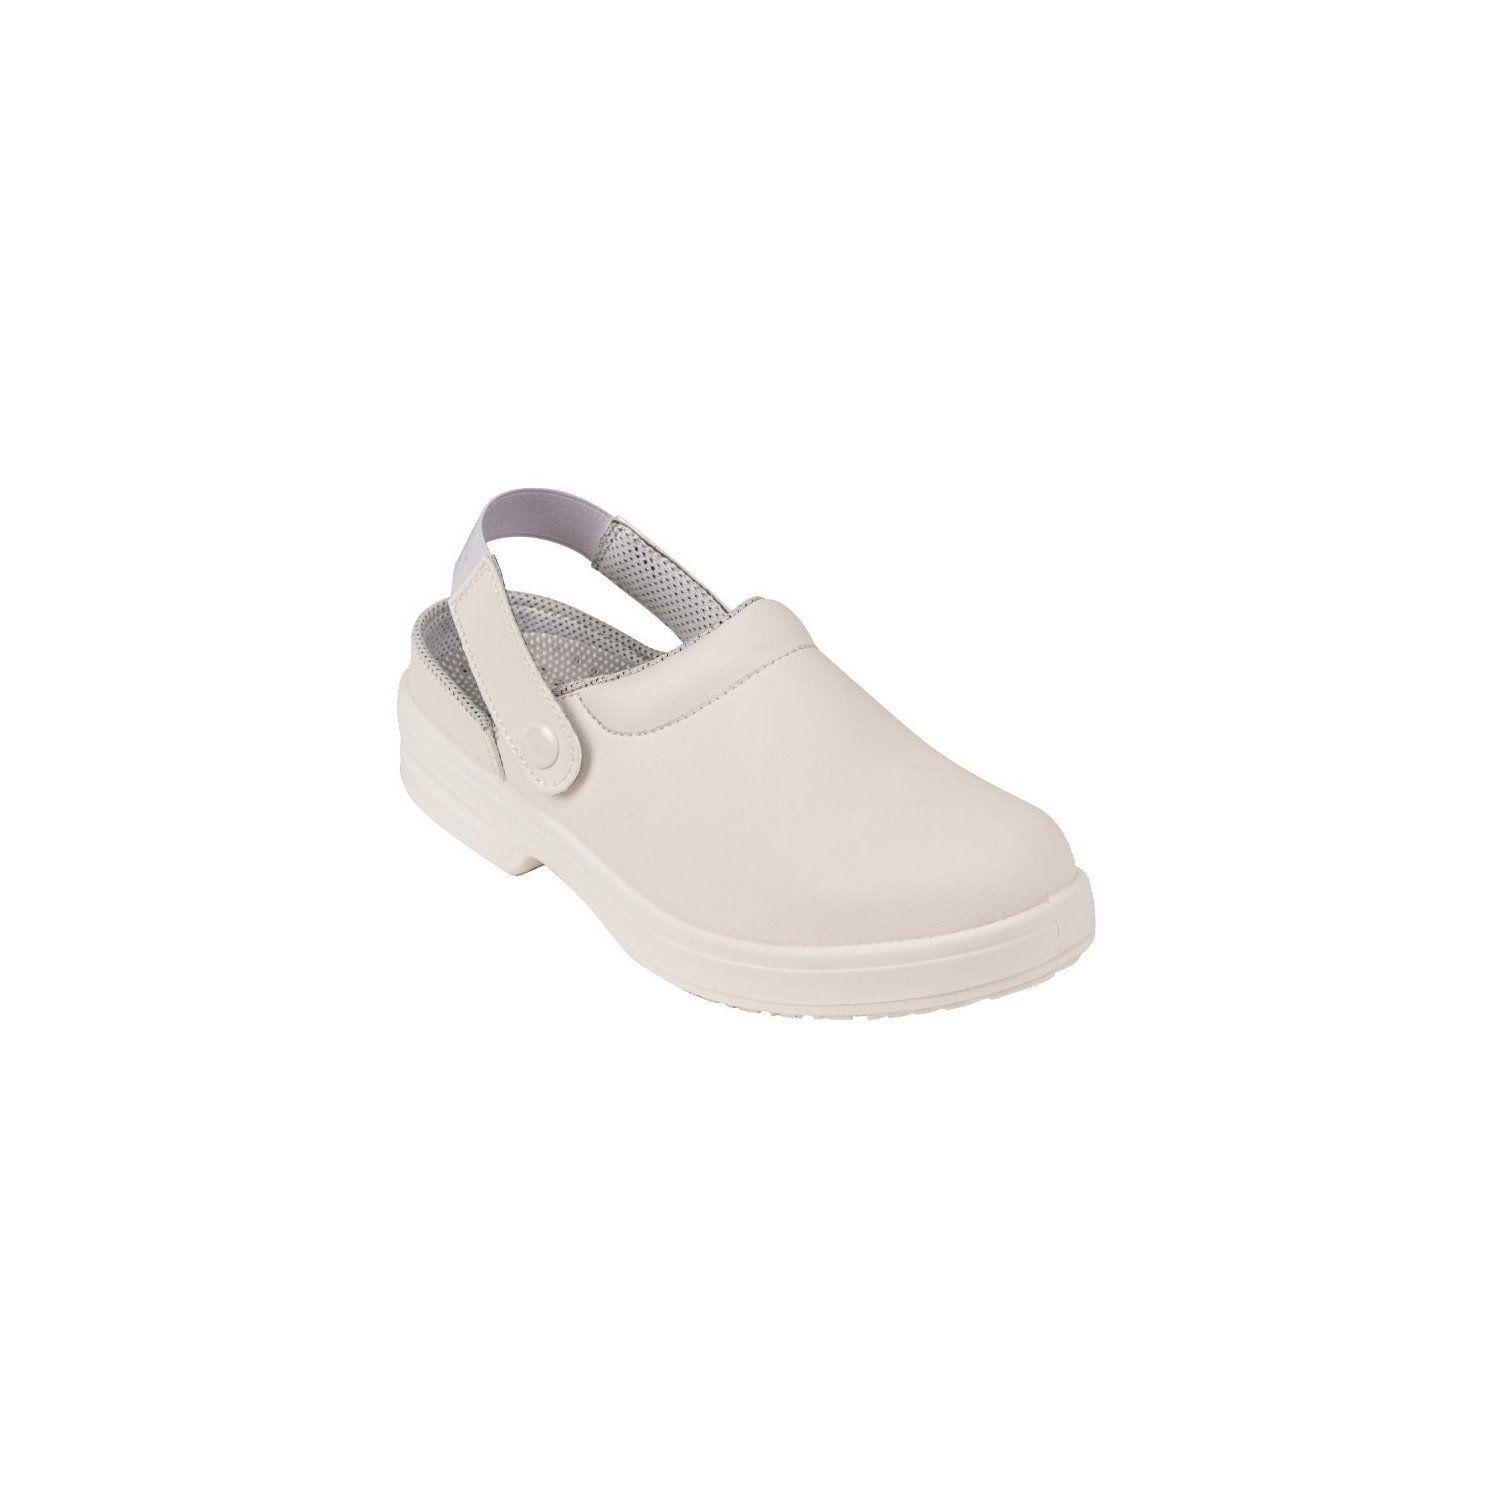 Sabots de sécurité unisexes Lites Blancs - Pointure 41 LITES SAFETY FOOTWEAR Nisbets Vêtements